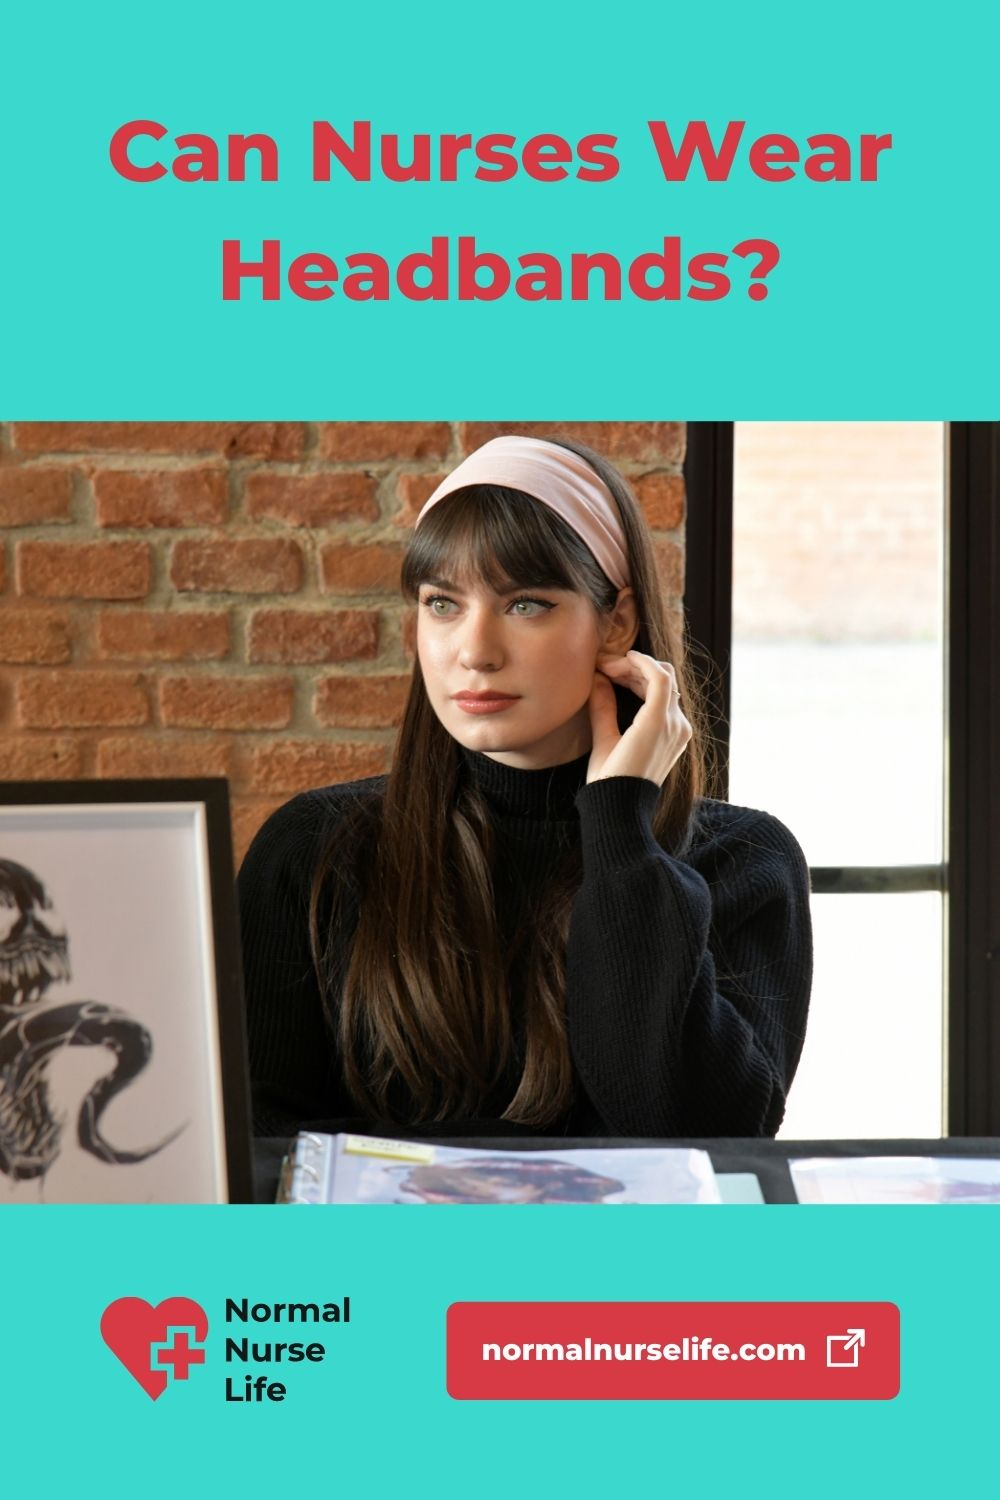 Can nurses wear headbands or not